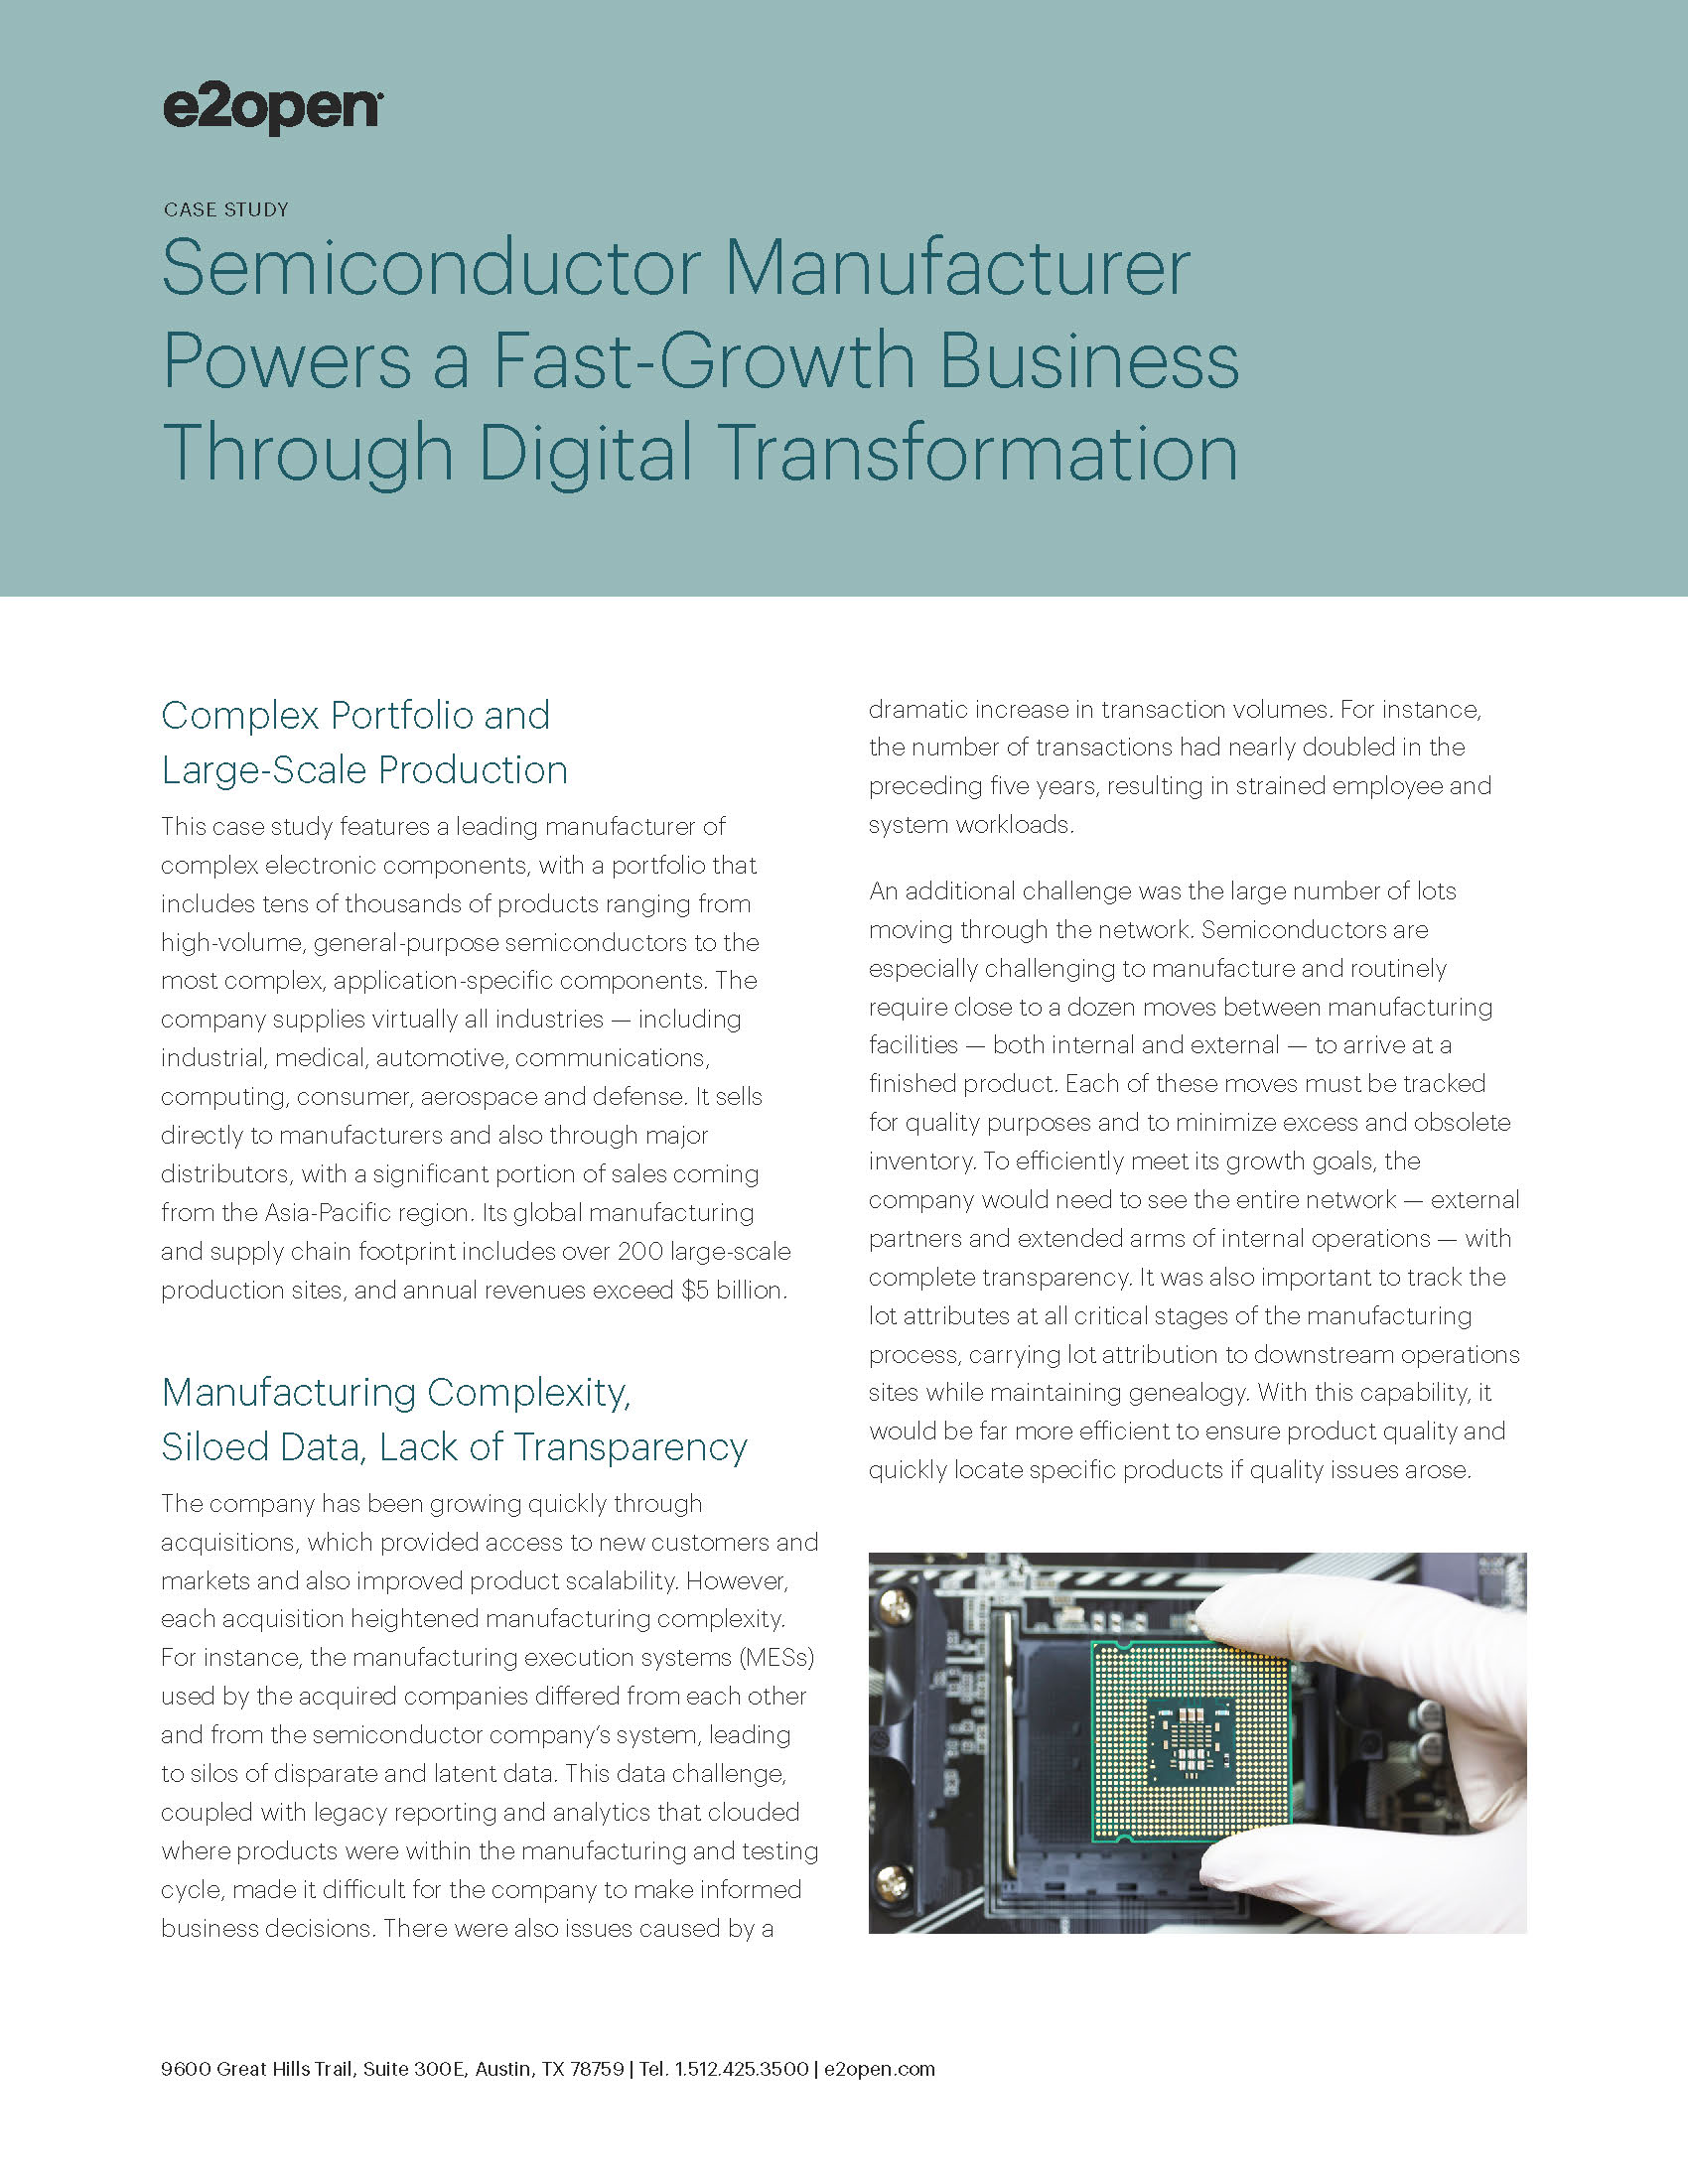 Major Semiconductor Manufacturer Transforms a Fast-Growth Business | E2open